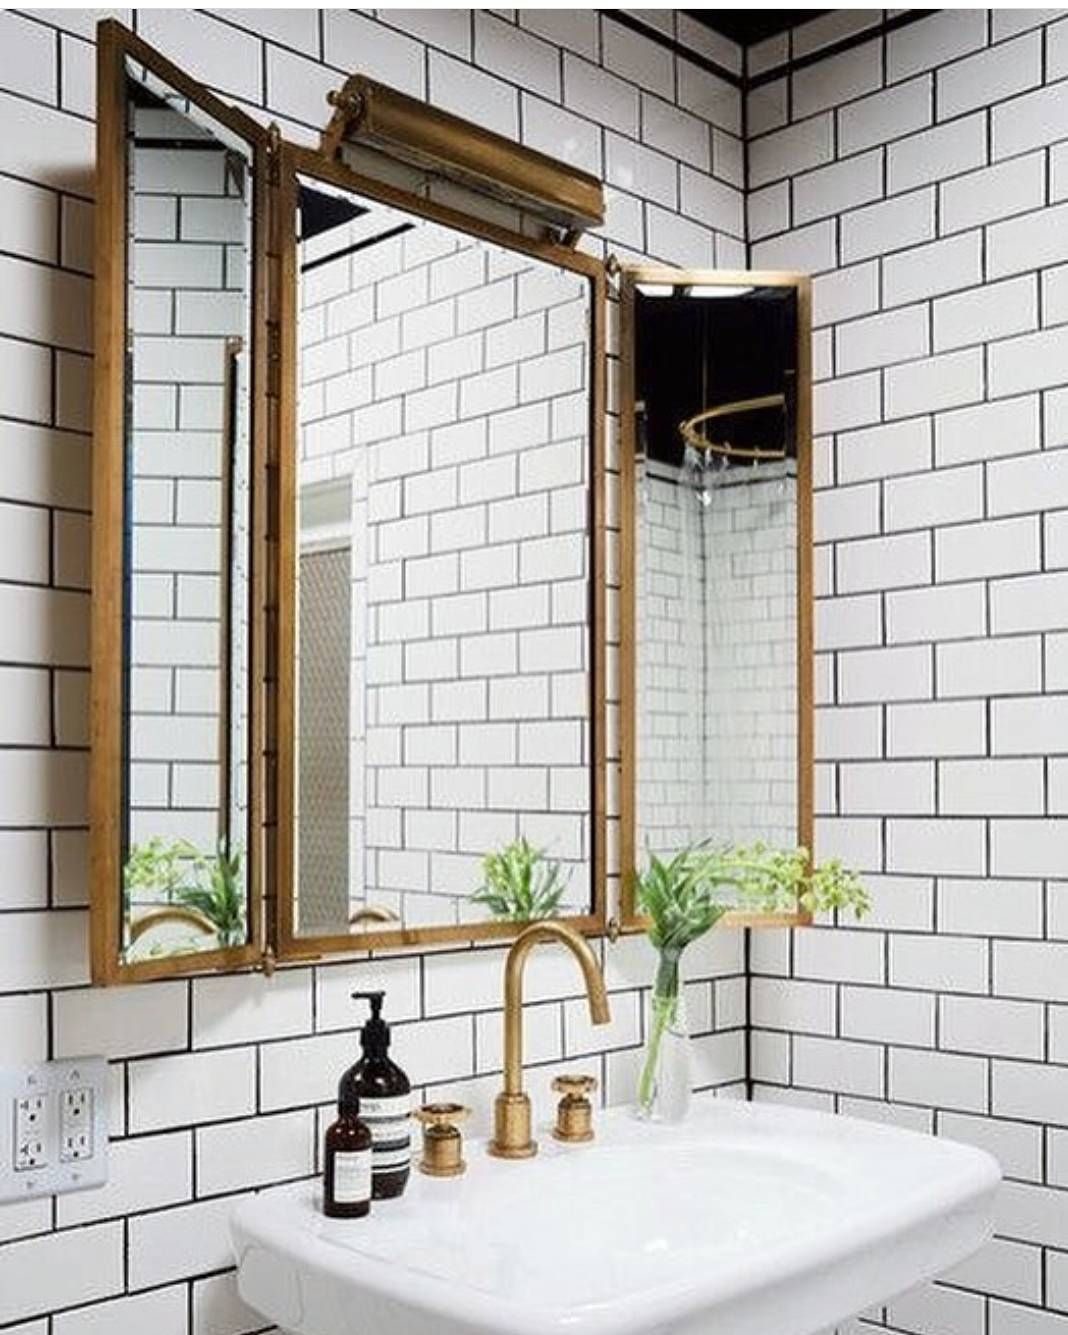 Floor To Ceiling White Subway Tile Black Grout And Brass